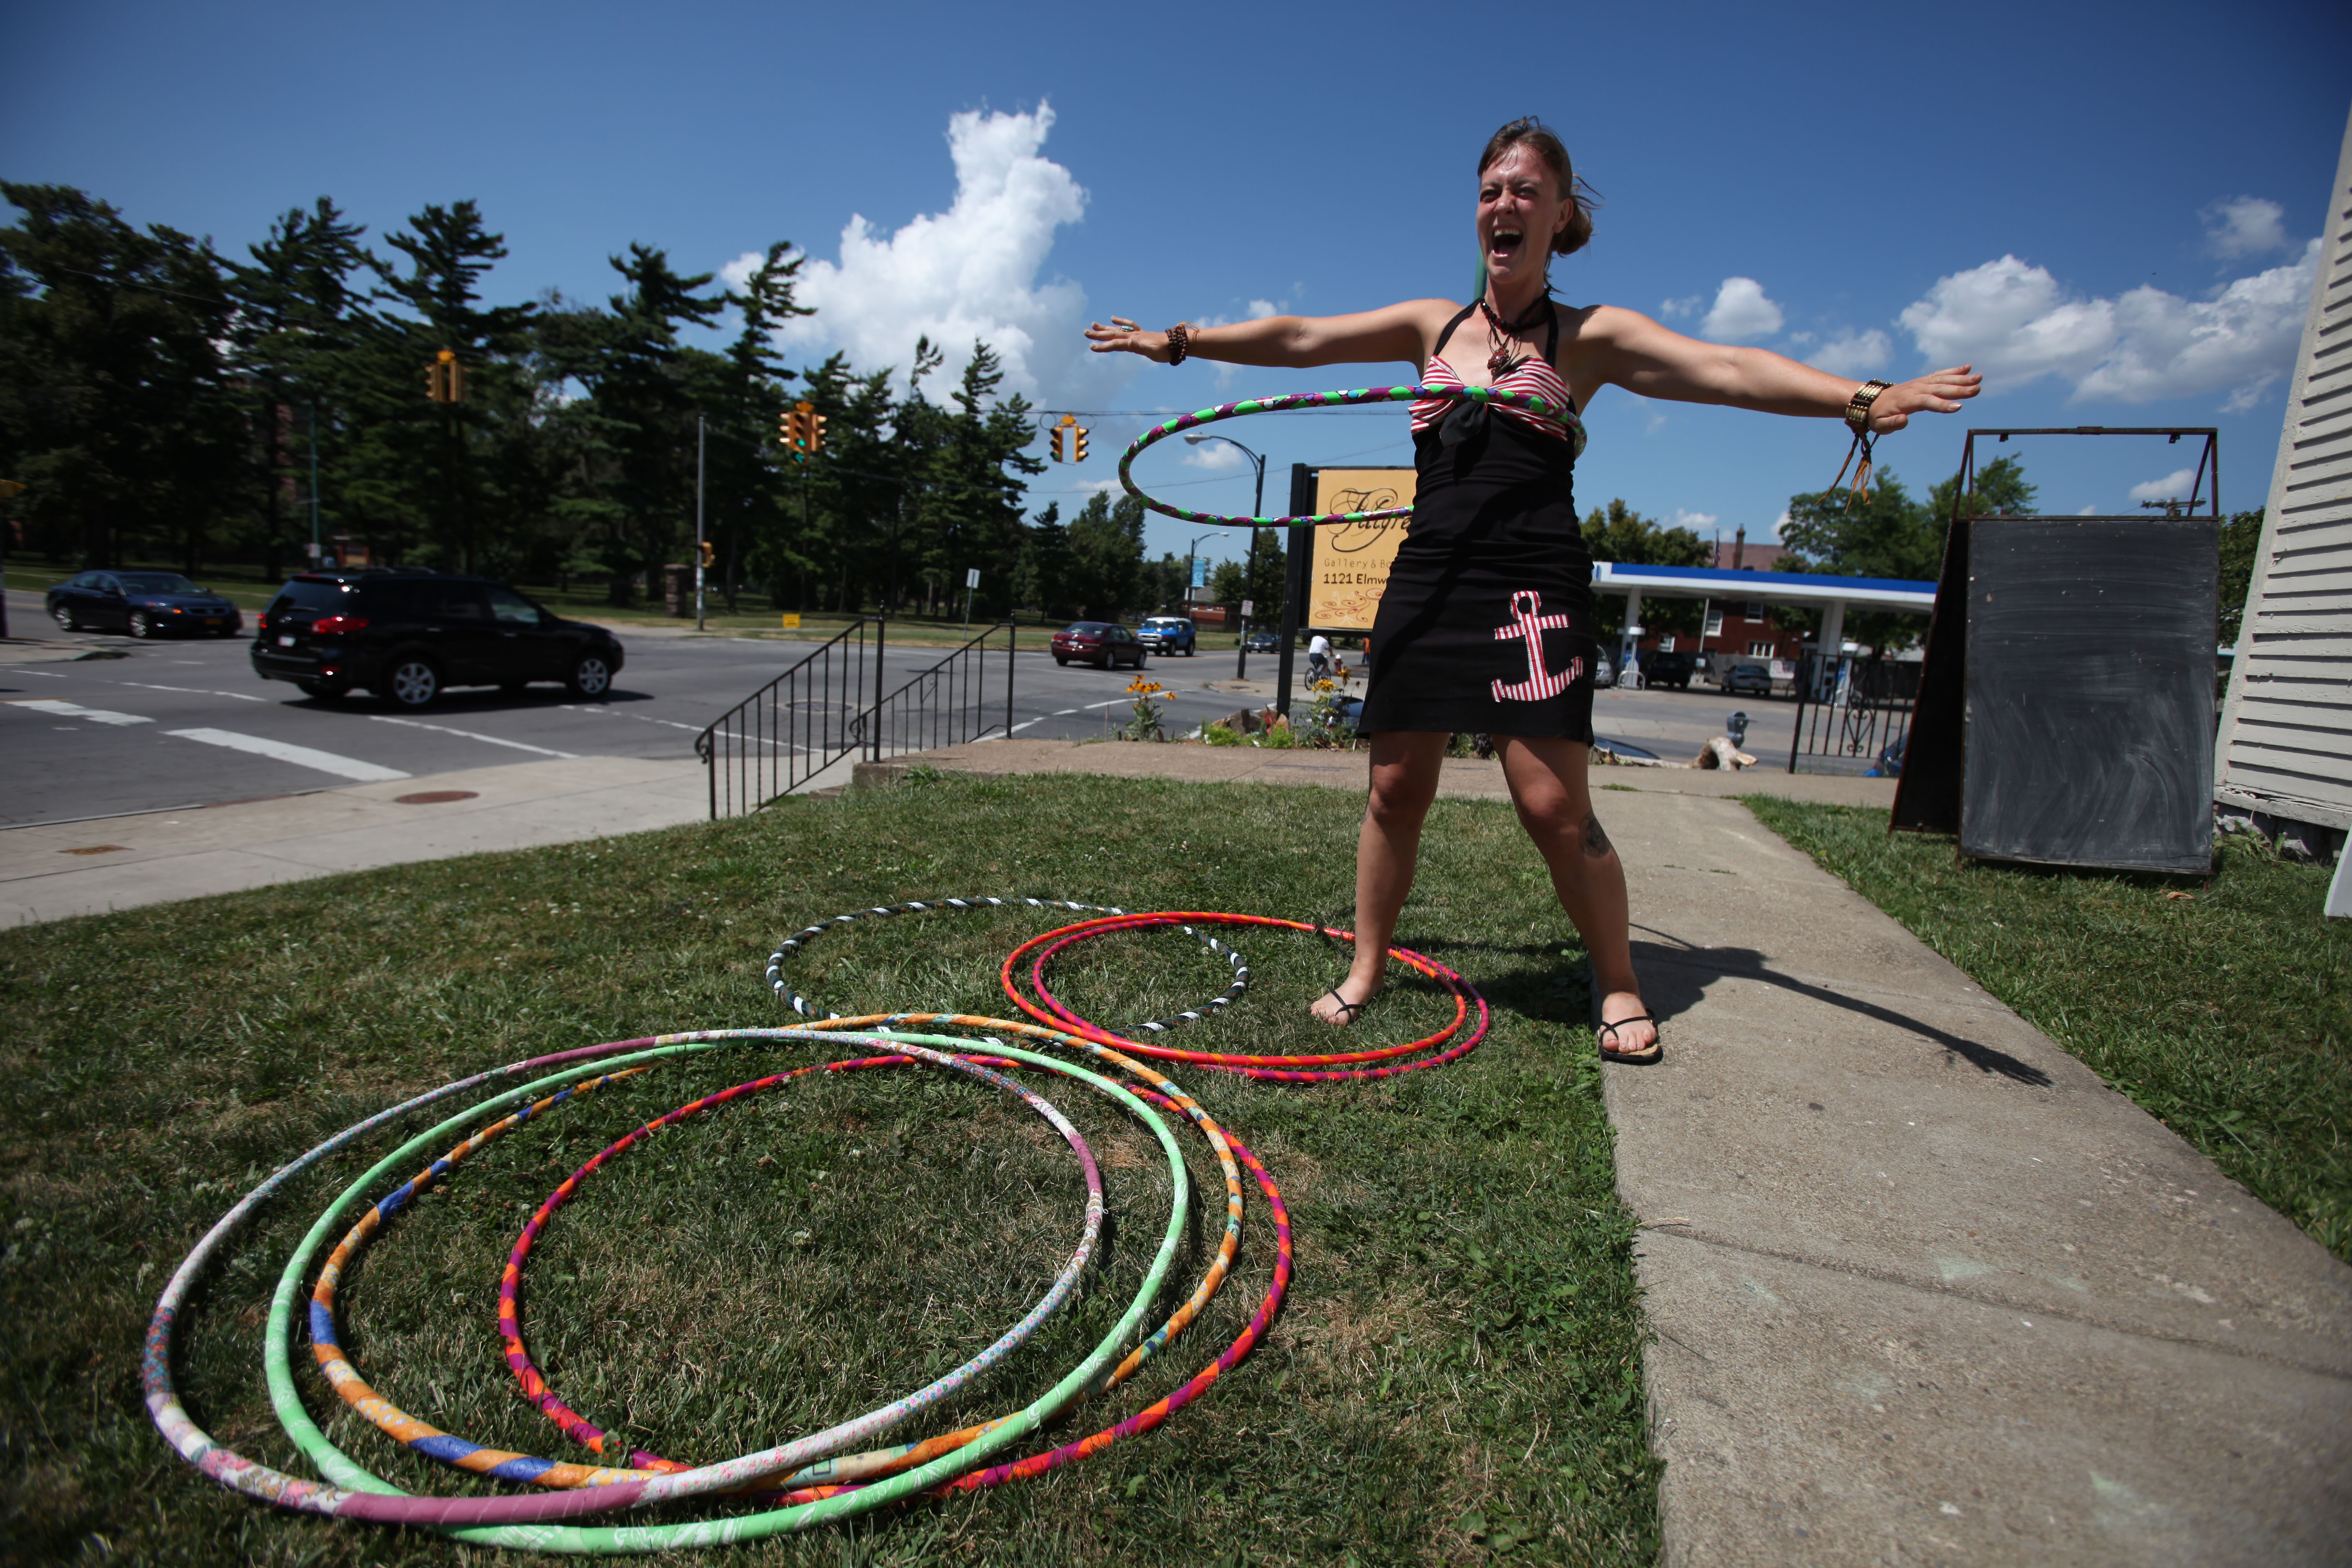 Melissa Campbell hula-hoops outside of Filigrees Gallery & Boutique on Elmwood, one of the many sites of the 2014 Buffalo Infringement Festival. (Charles Lewis / Buffalo News file photo)